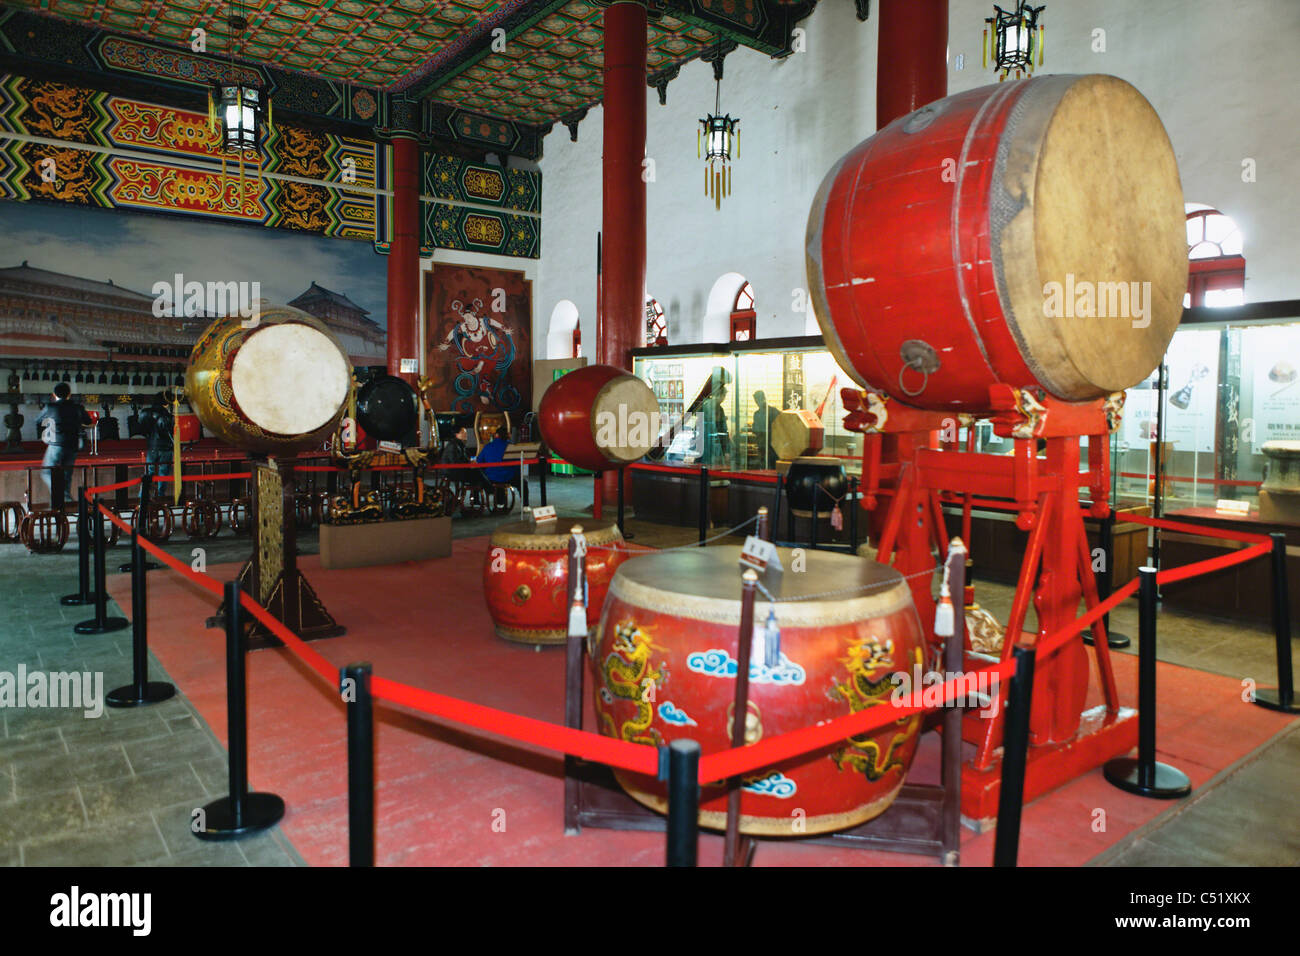 Interior of the Drum Tower with Drum Exhibit, Xian City, Shaanxi, China - Stock Image